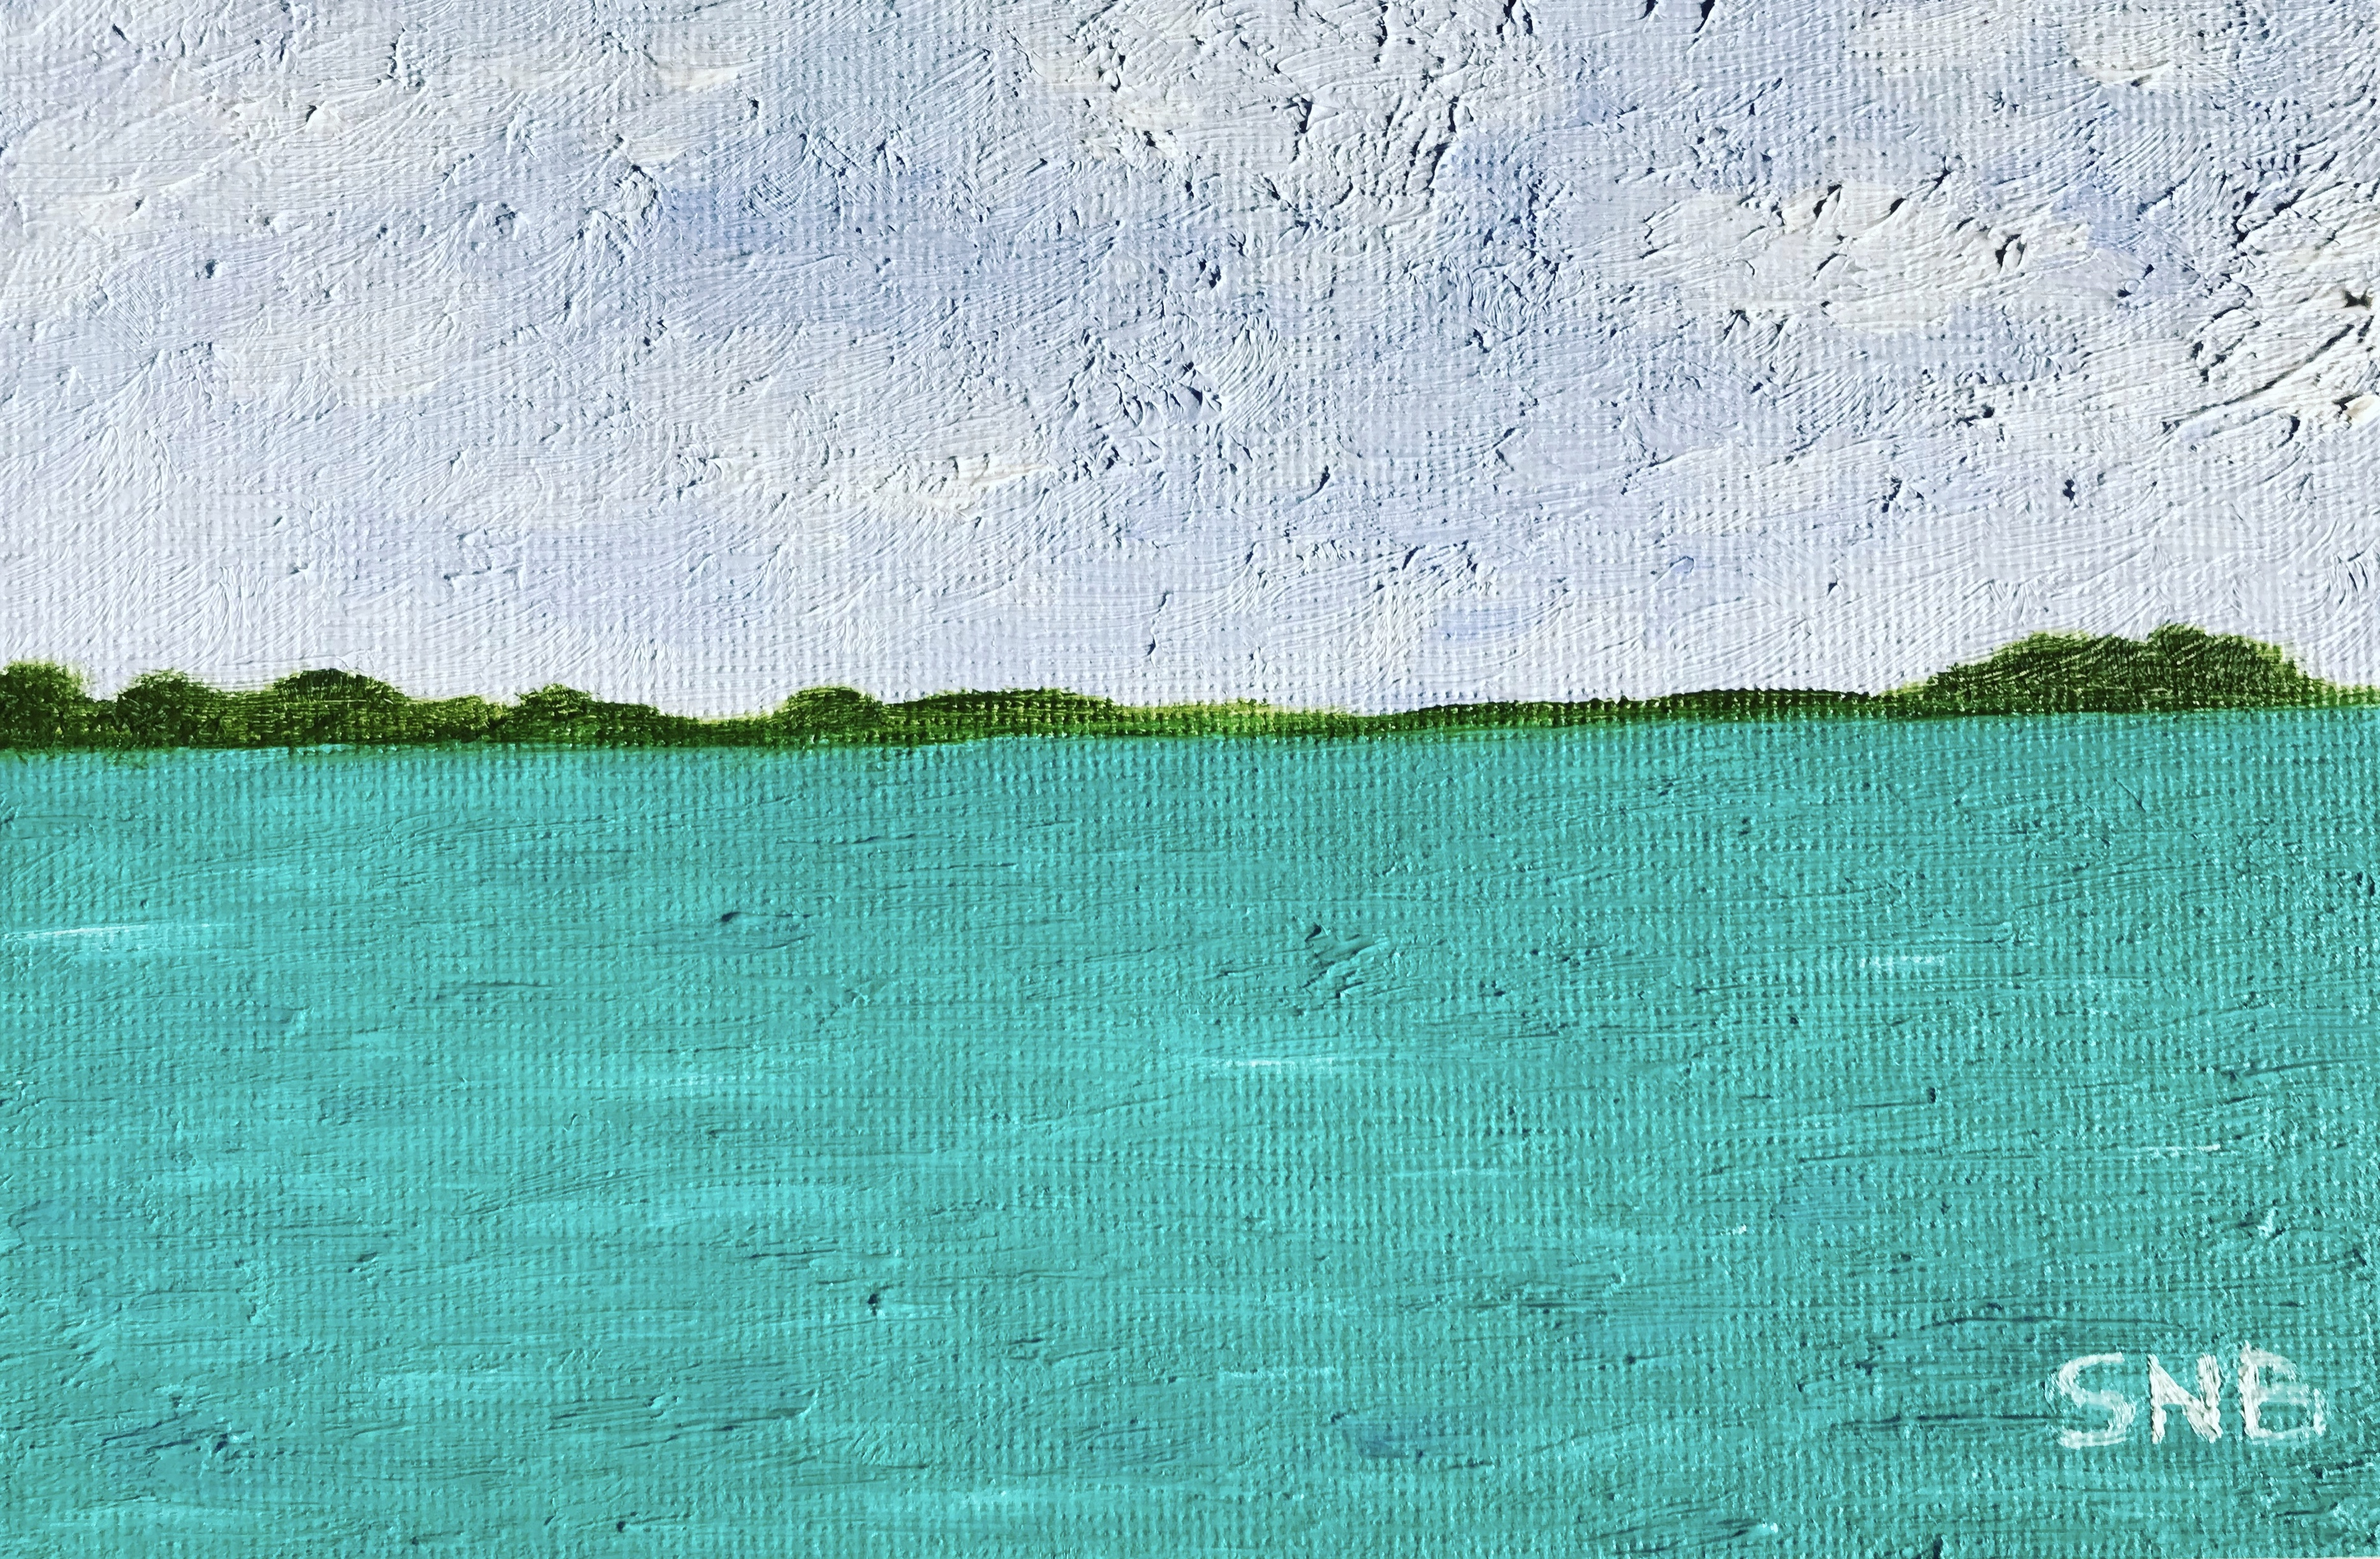 Aitutaki, a 4 x 6 Oil Painting. The Painting is of a turquise green lagoon with jungle coastline and light blue sky